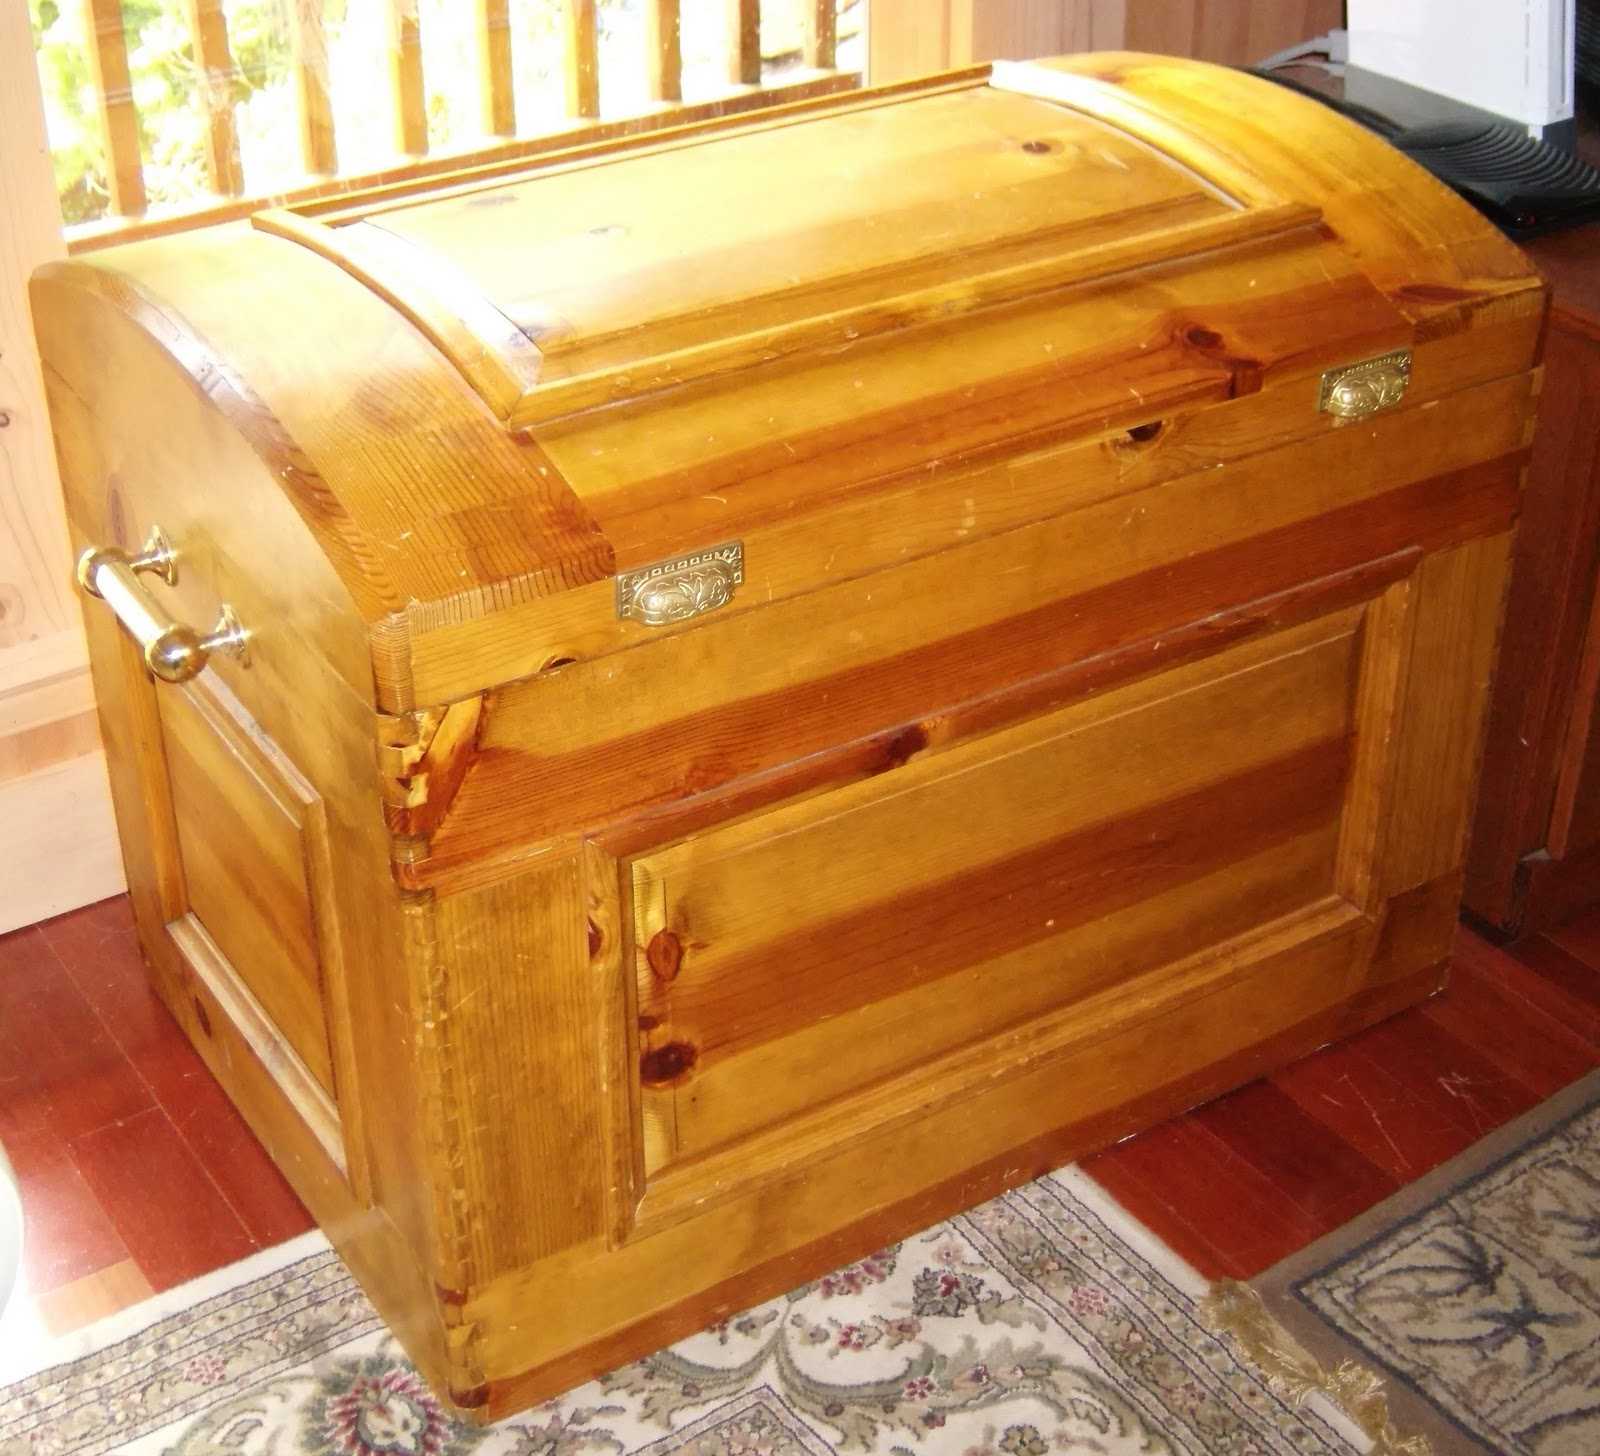 Woodwork cedar chest woodworking plans pdf